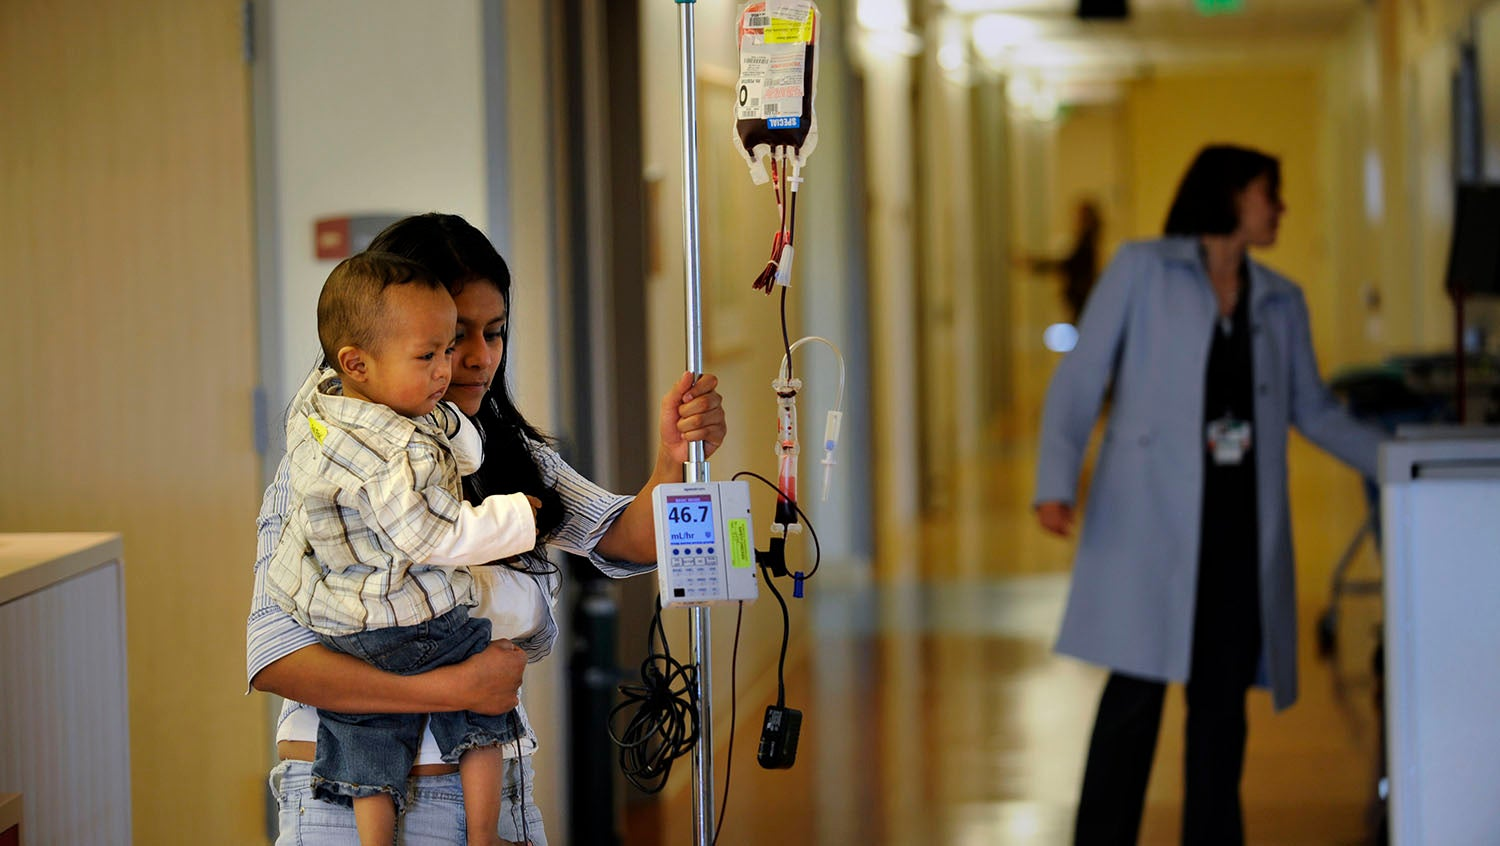 child and adult with sickle cell disease type sickle cell anemia in a hospital